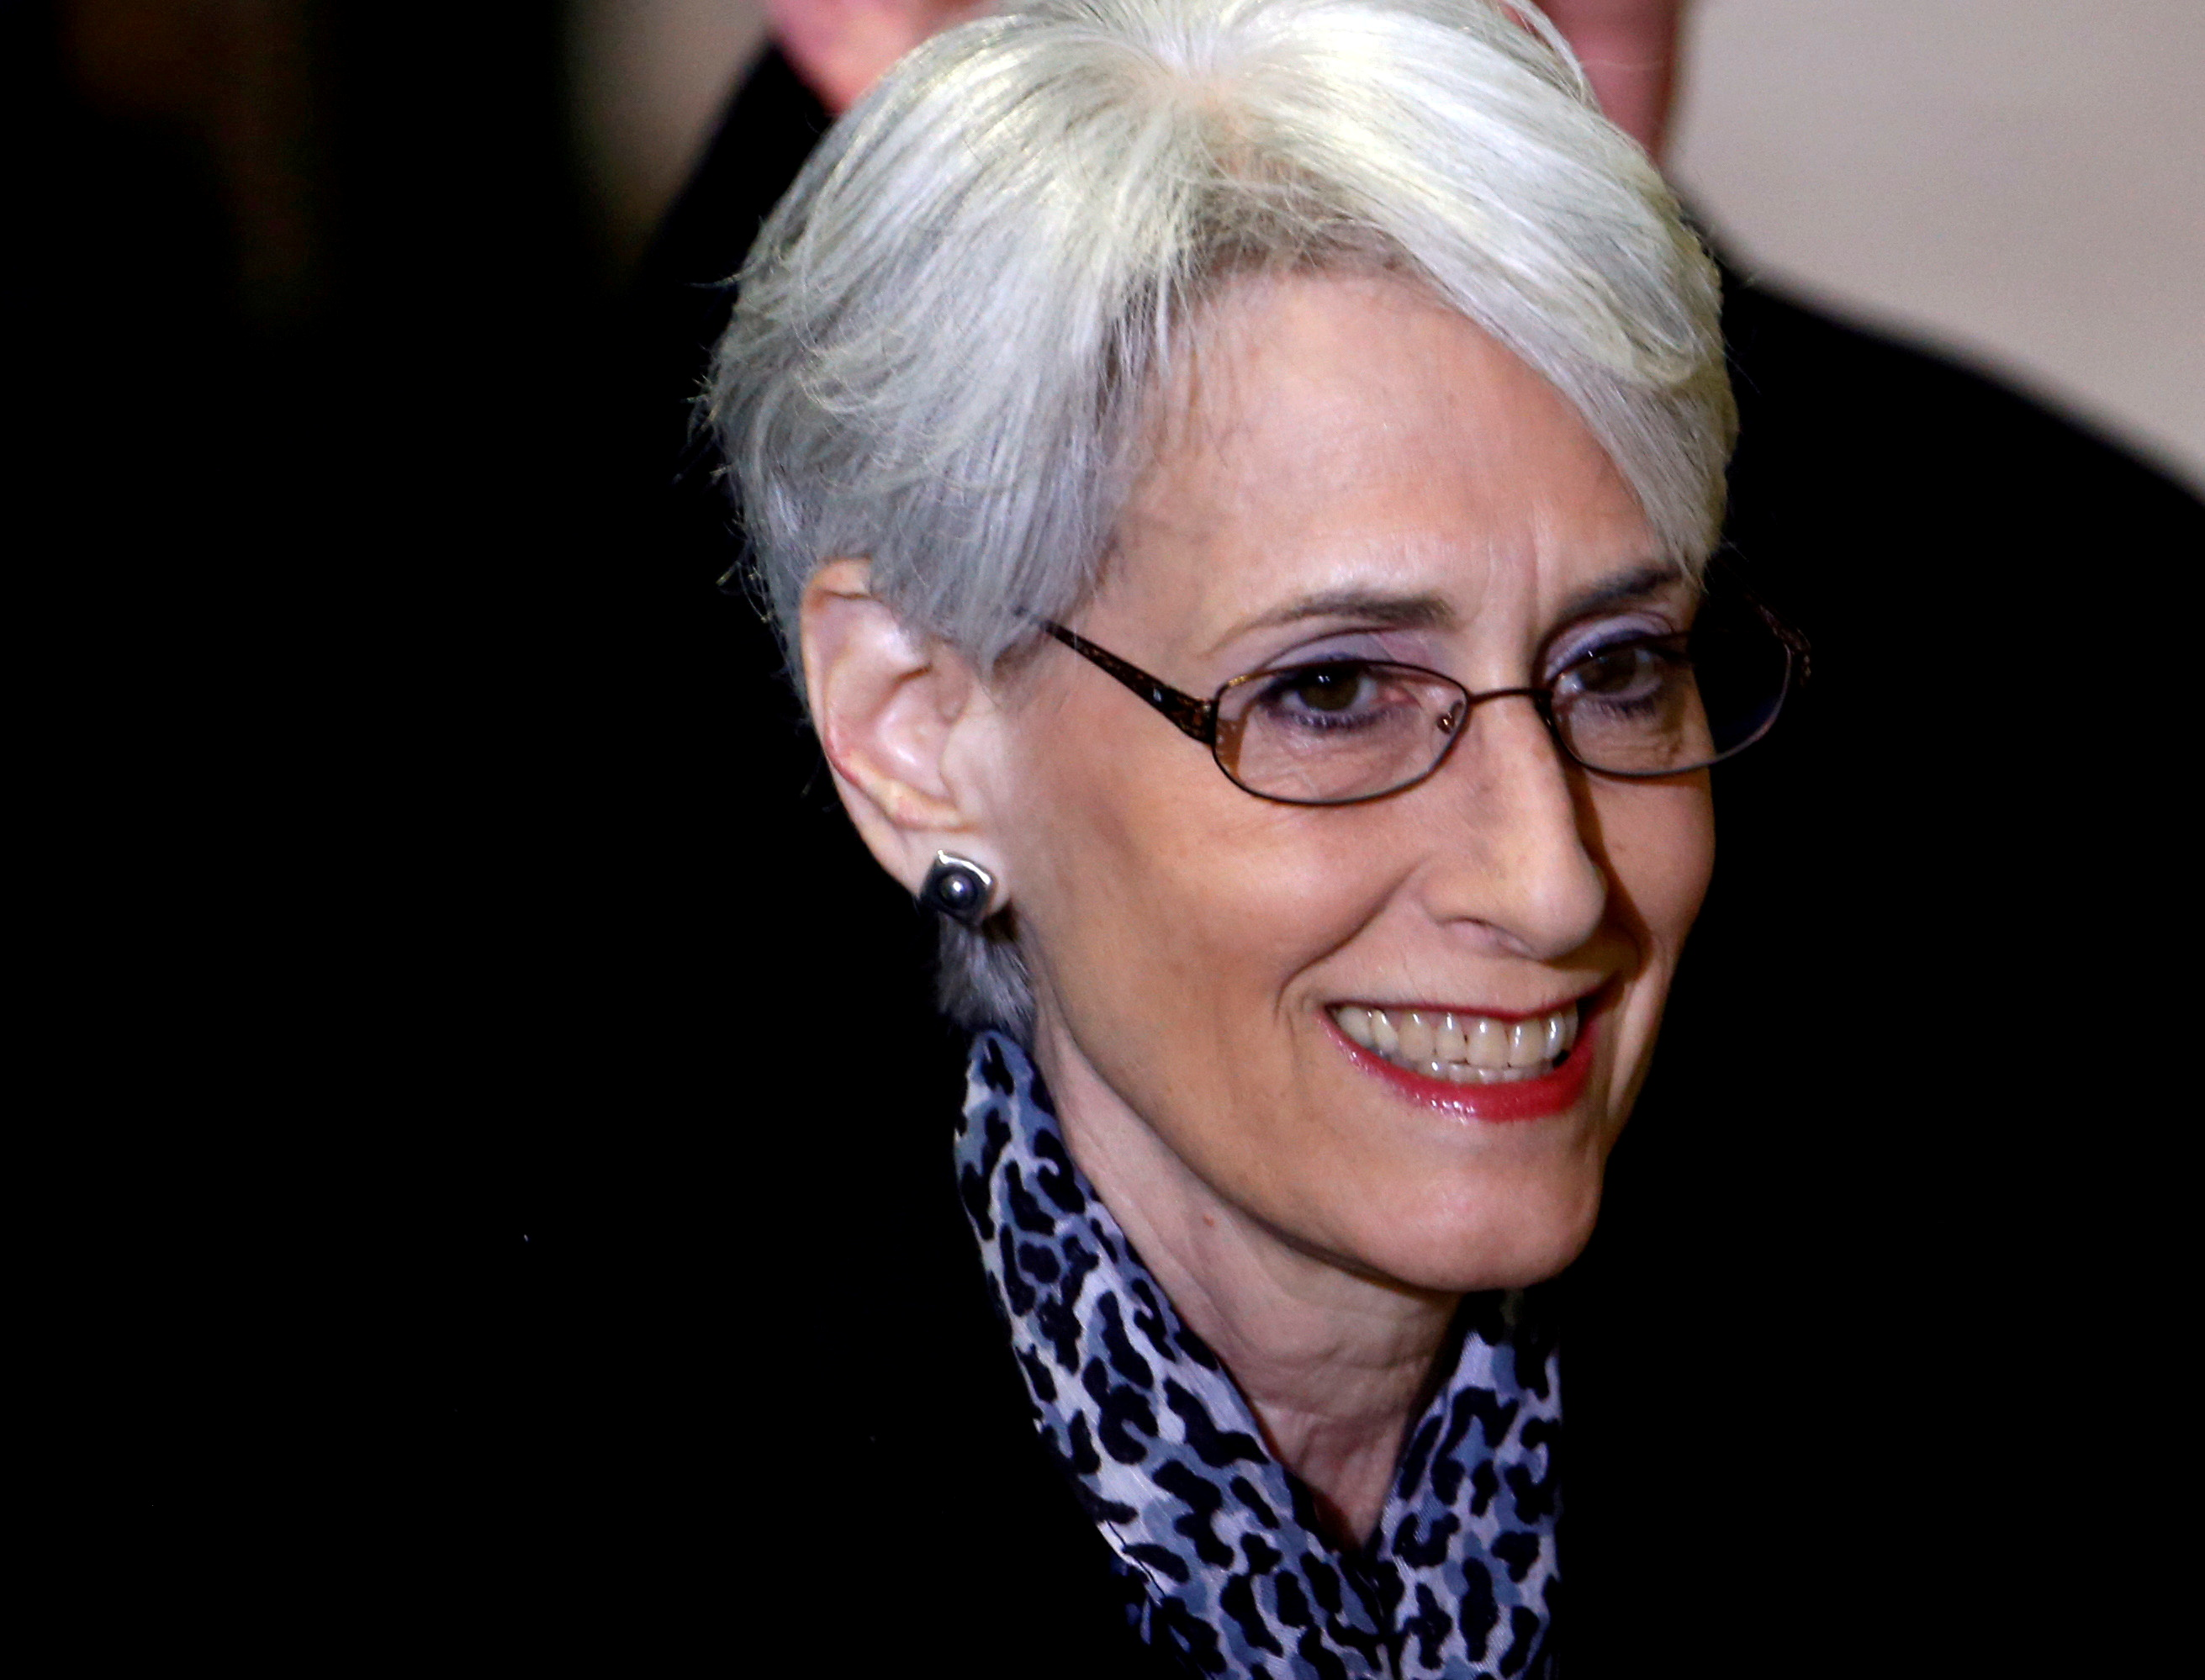 Wendy Sherman arrives for a meeting on Syria at the United Nations European headquarters in Geneva February 13, 2014.  REUTERS/Denis Balibouse/File Photo/File Photo/File Photo/File Photo